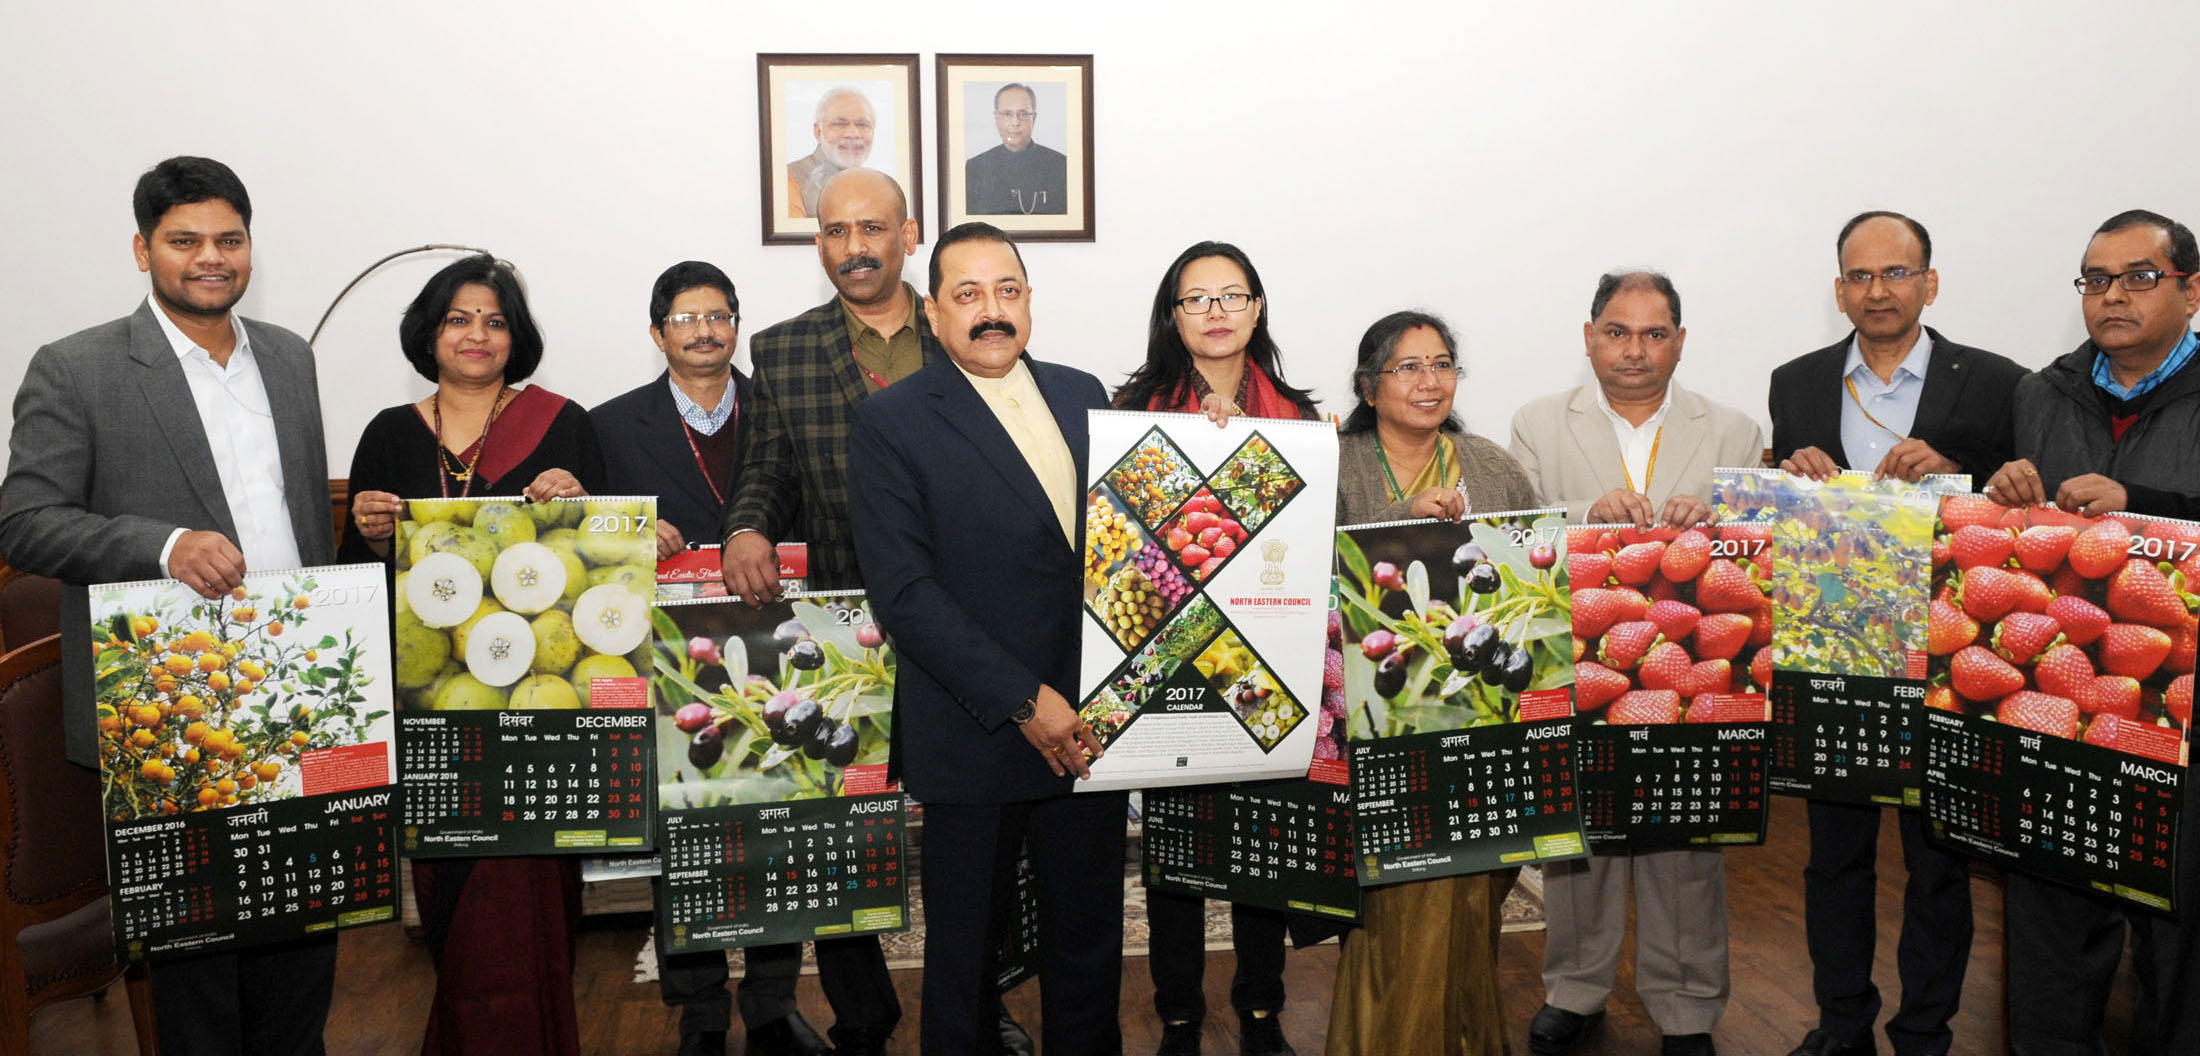 Dr Jitendra Singh releasing the 2017 Calendar of the North Eastern Council in New Delhi